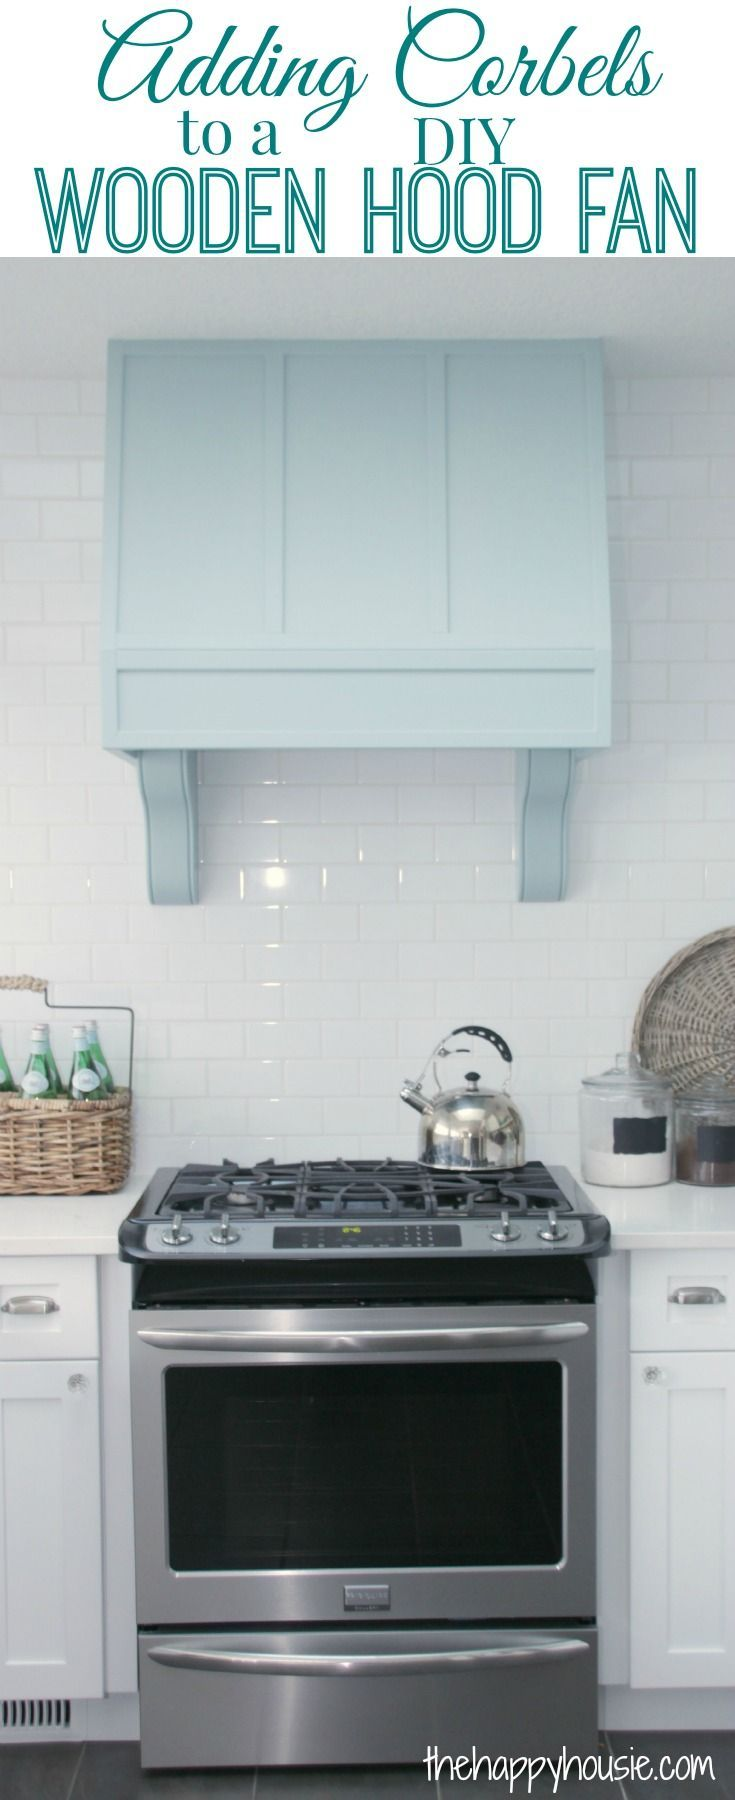 Pump Up the Kitchen Drama: How to Add Corbels to a Wooden Hood Fan ...